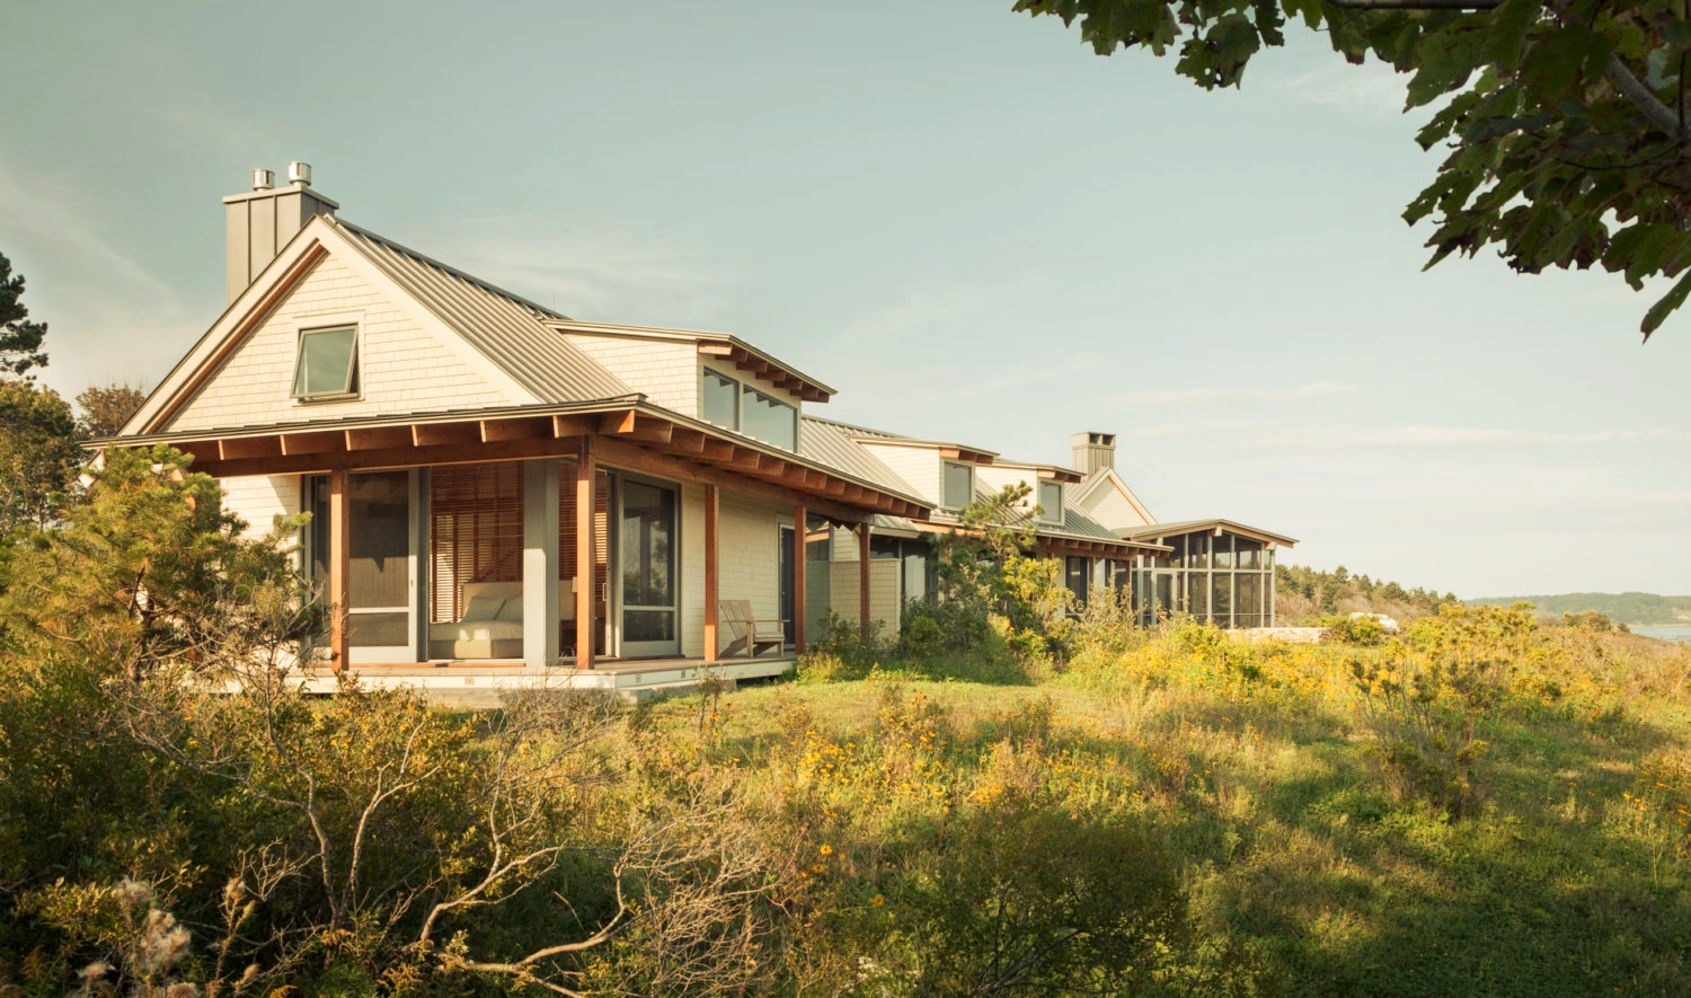 Seafront house Spurwink Retreat showing off camp like design with perfect craftsmanship and well layouted landscape (2)